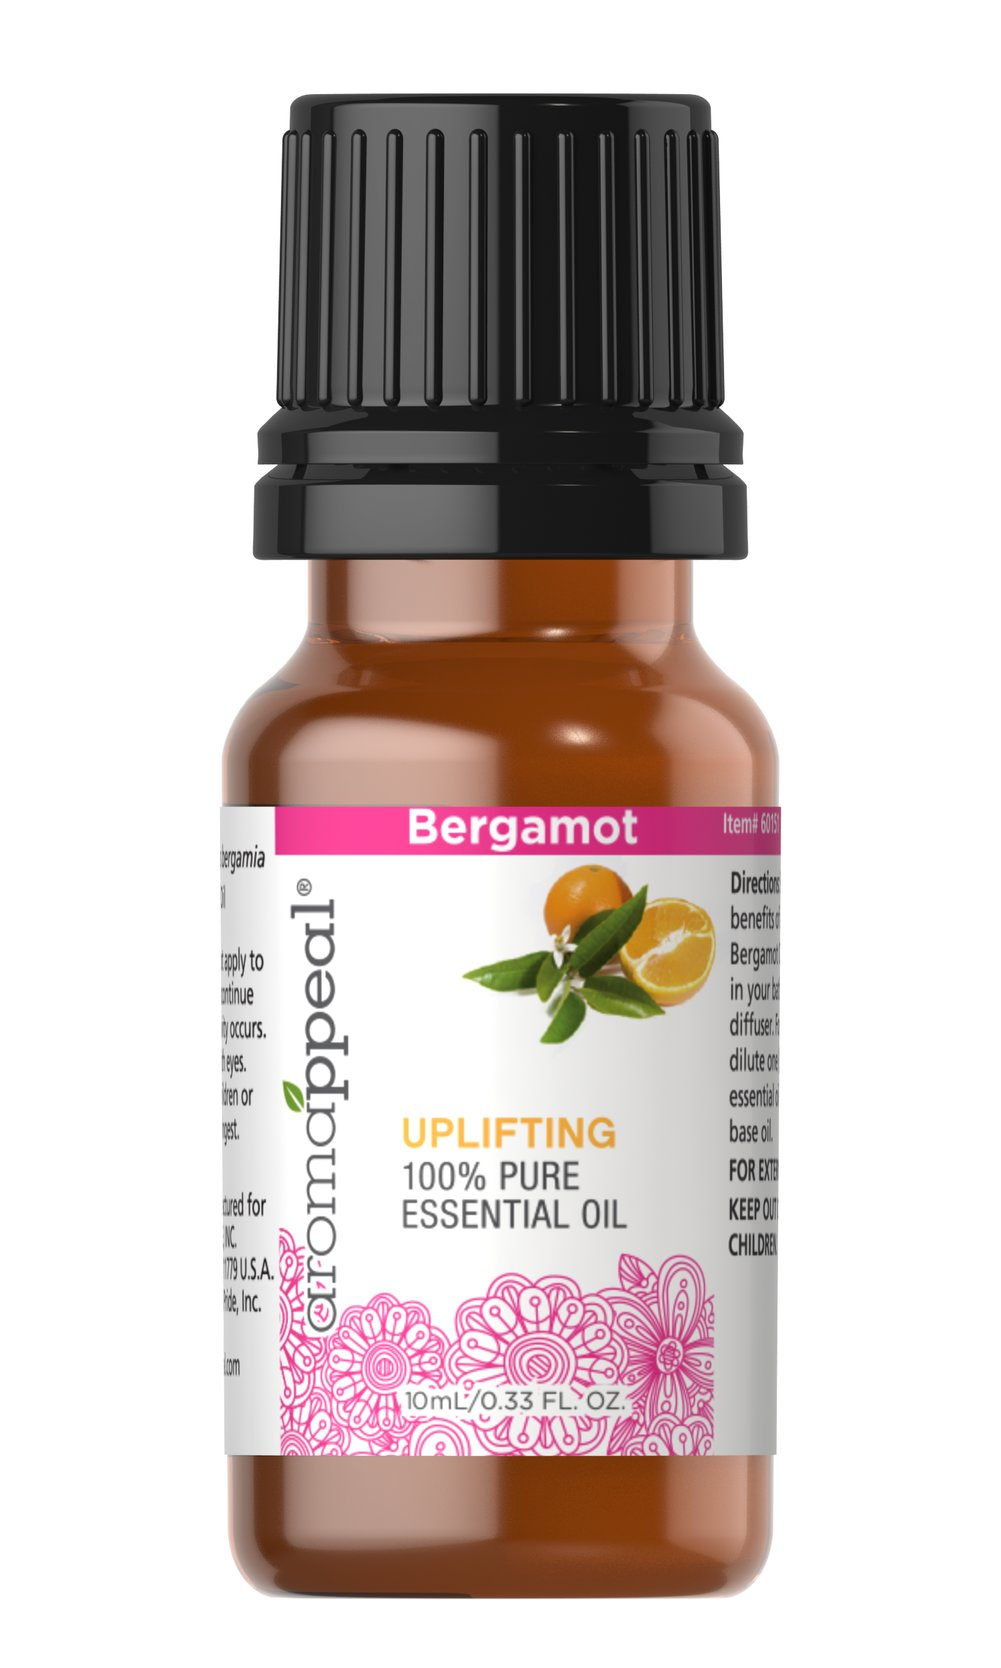 Bergamot 100% Pure Essential Oil  10 ml Oil  $14.99